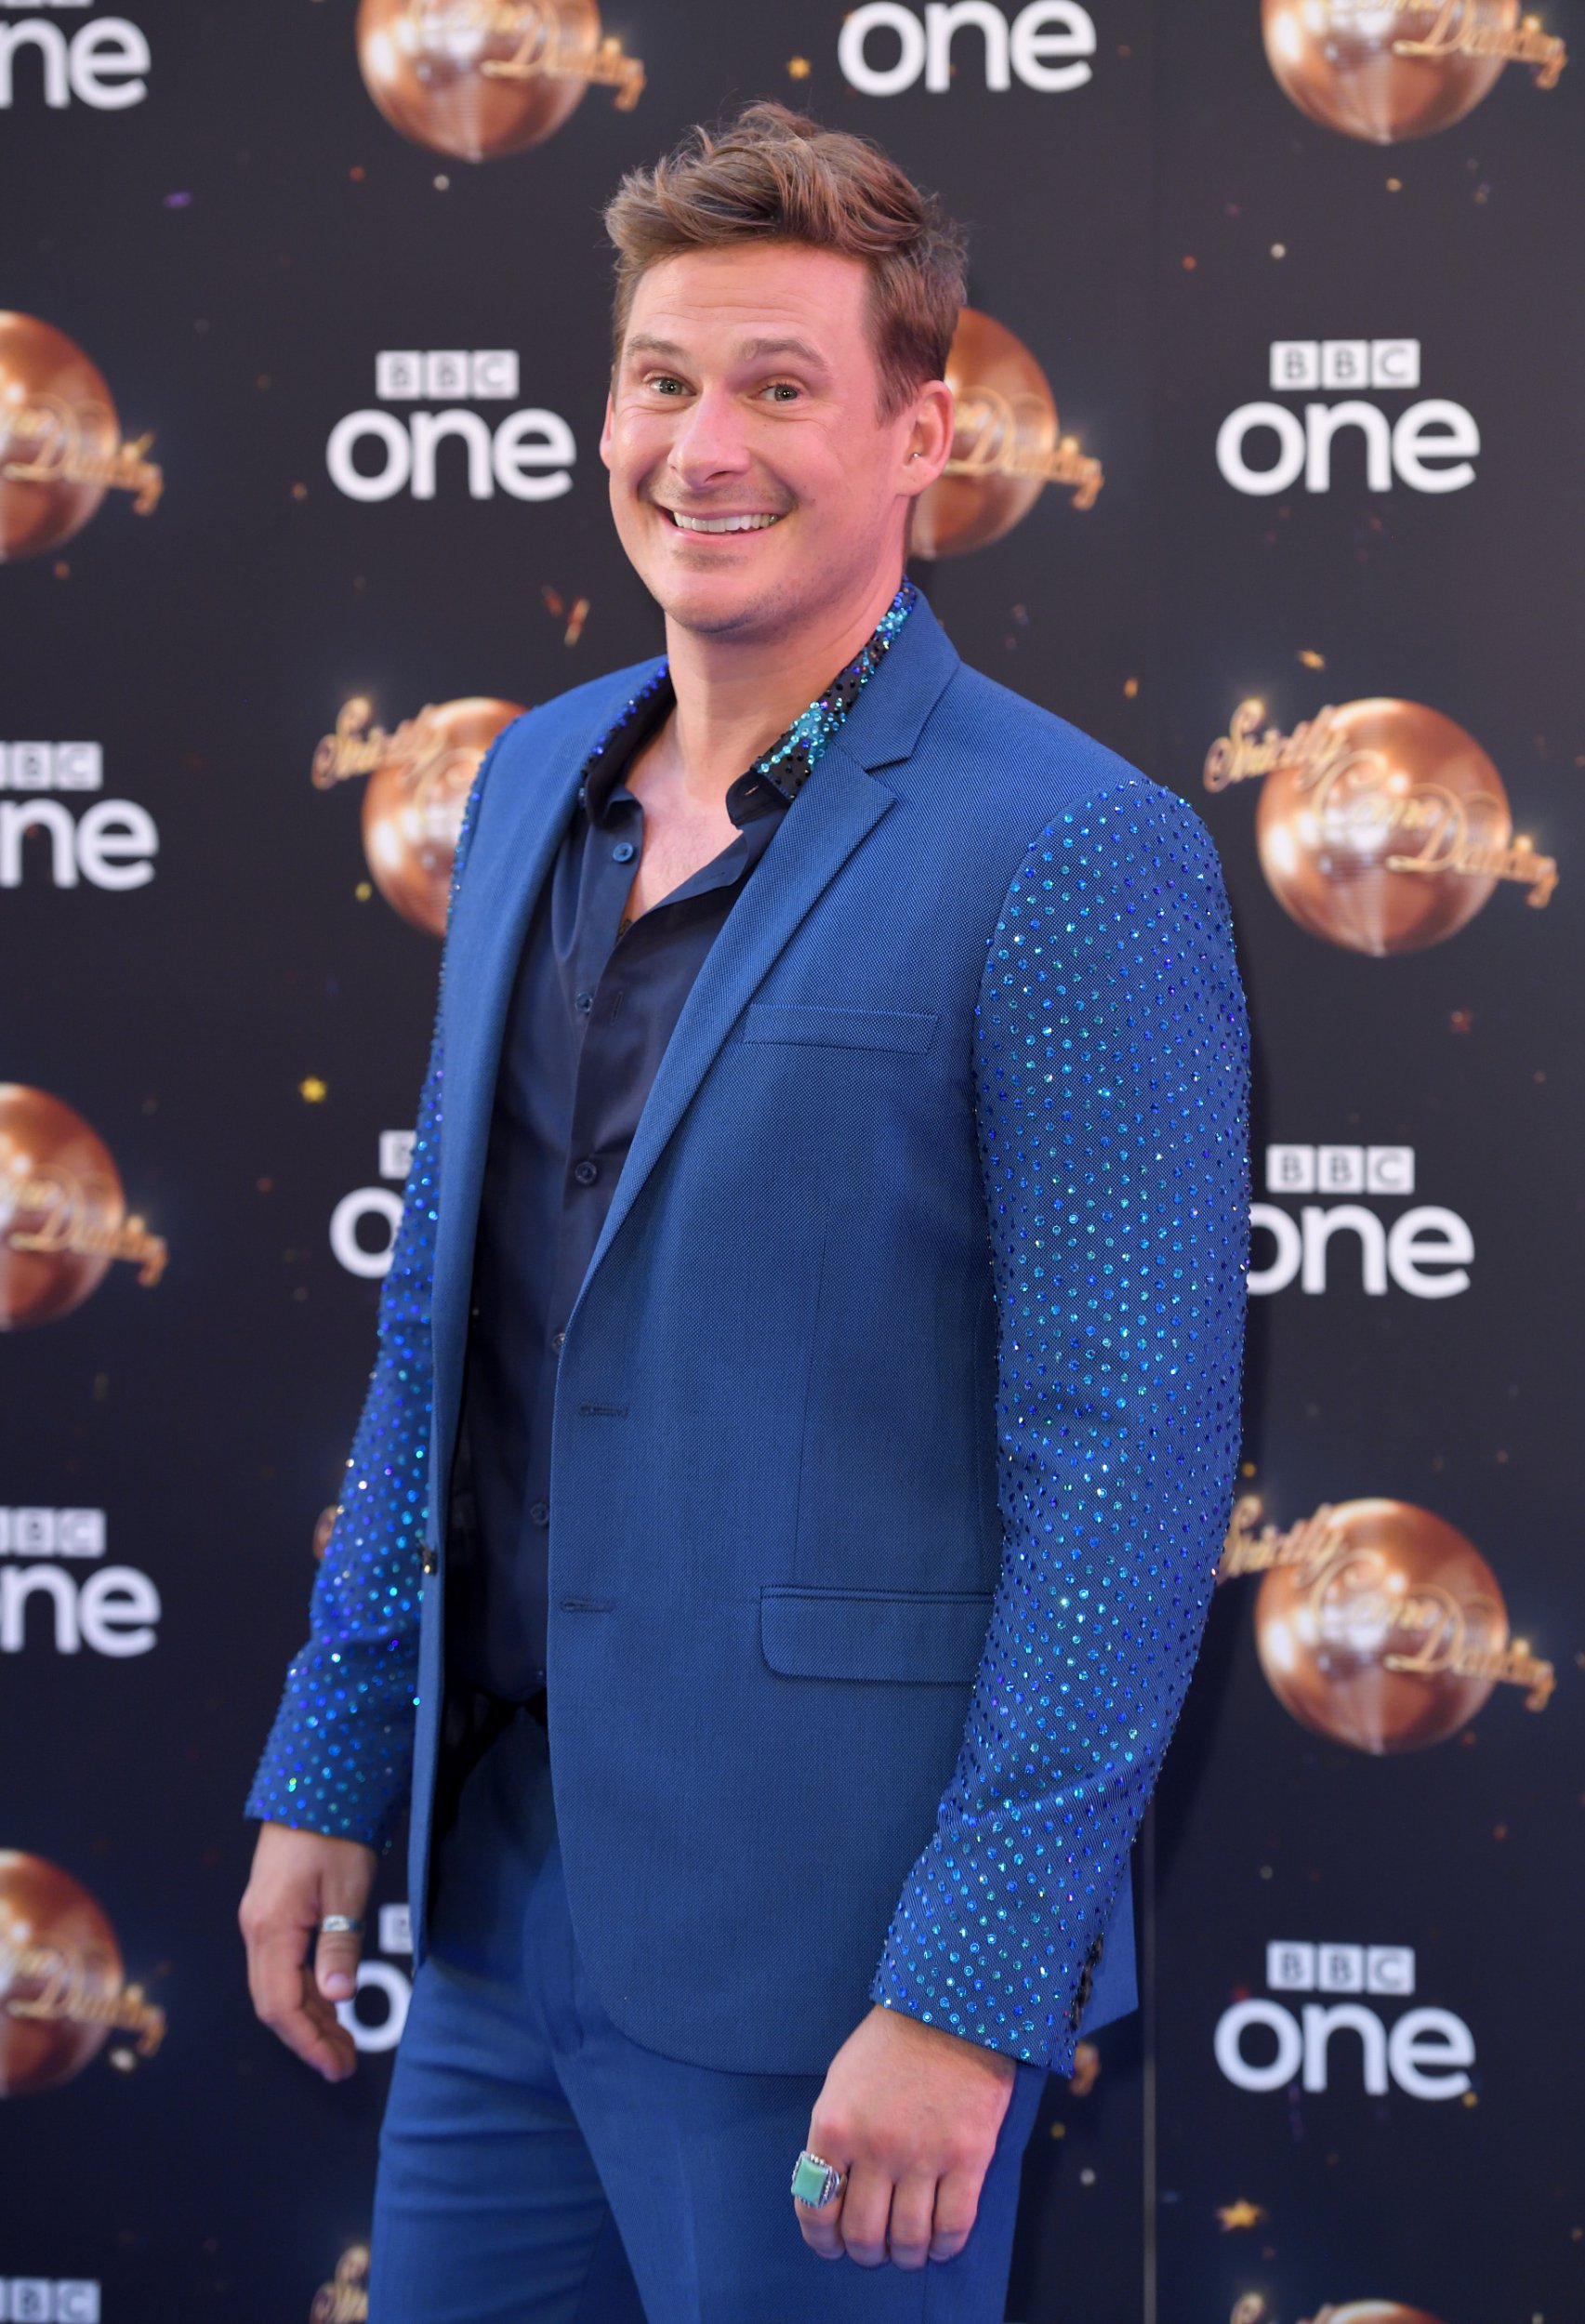 LONDON, ENGLAND - AUGUST 27: Lee Ryan attends the red carpet launch for 'Strictly Come Dancing 2018' at Old Broadcasting House on August 27, 2018 in London, England. (Photo by Karwai Tang/WireImage)